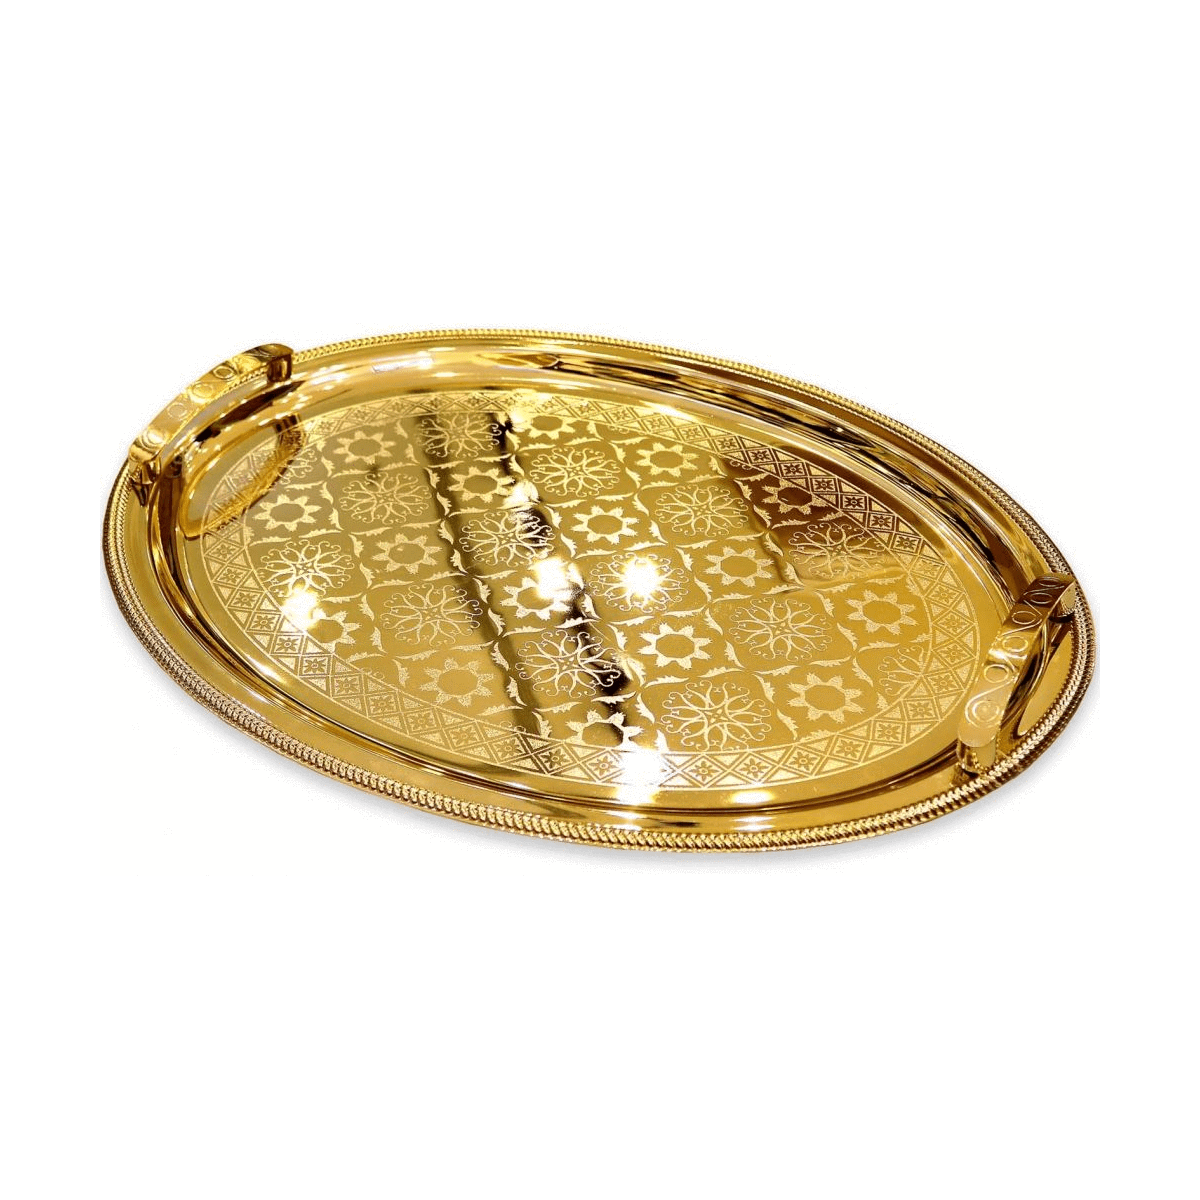 Stainless Steel Oval Serving Tray 39x52cm, Gold